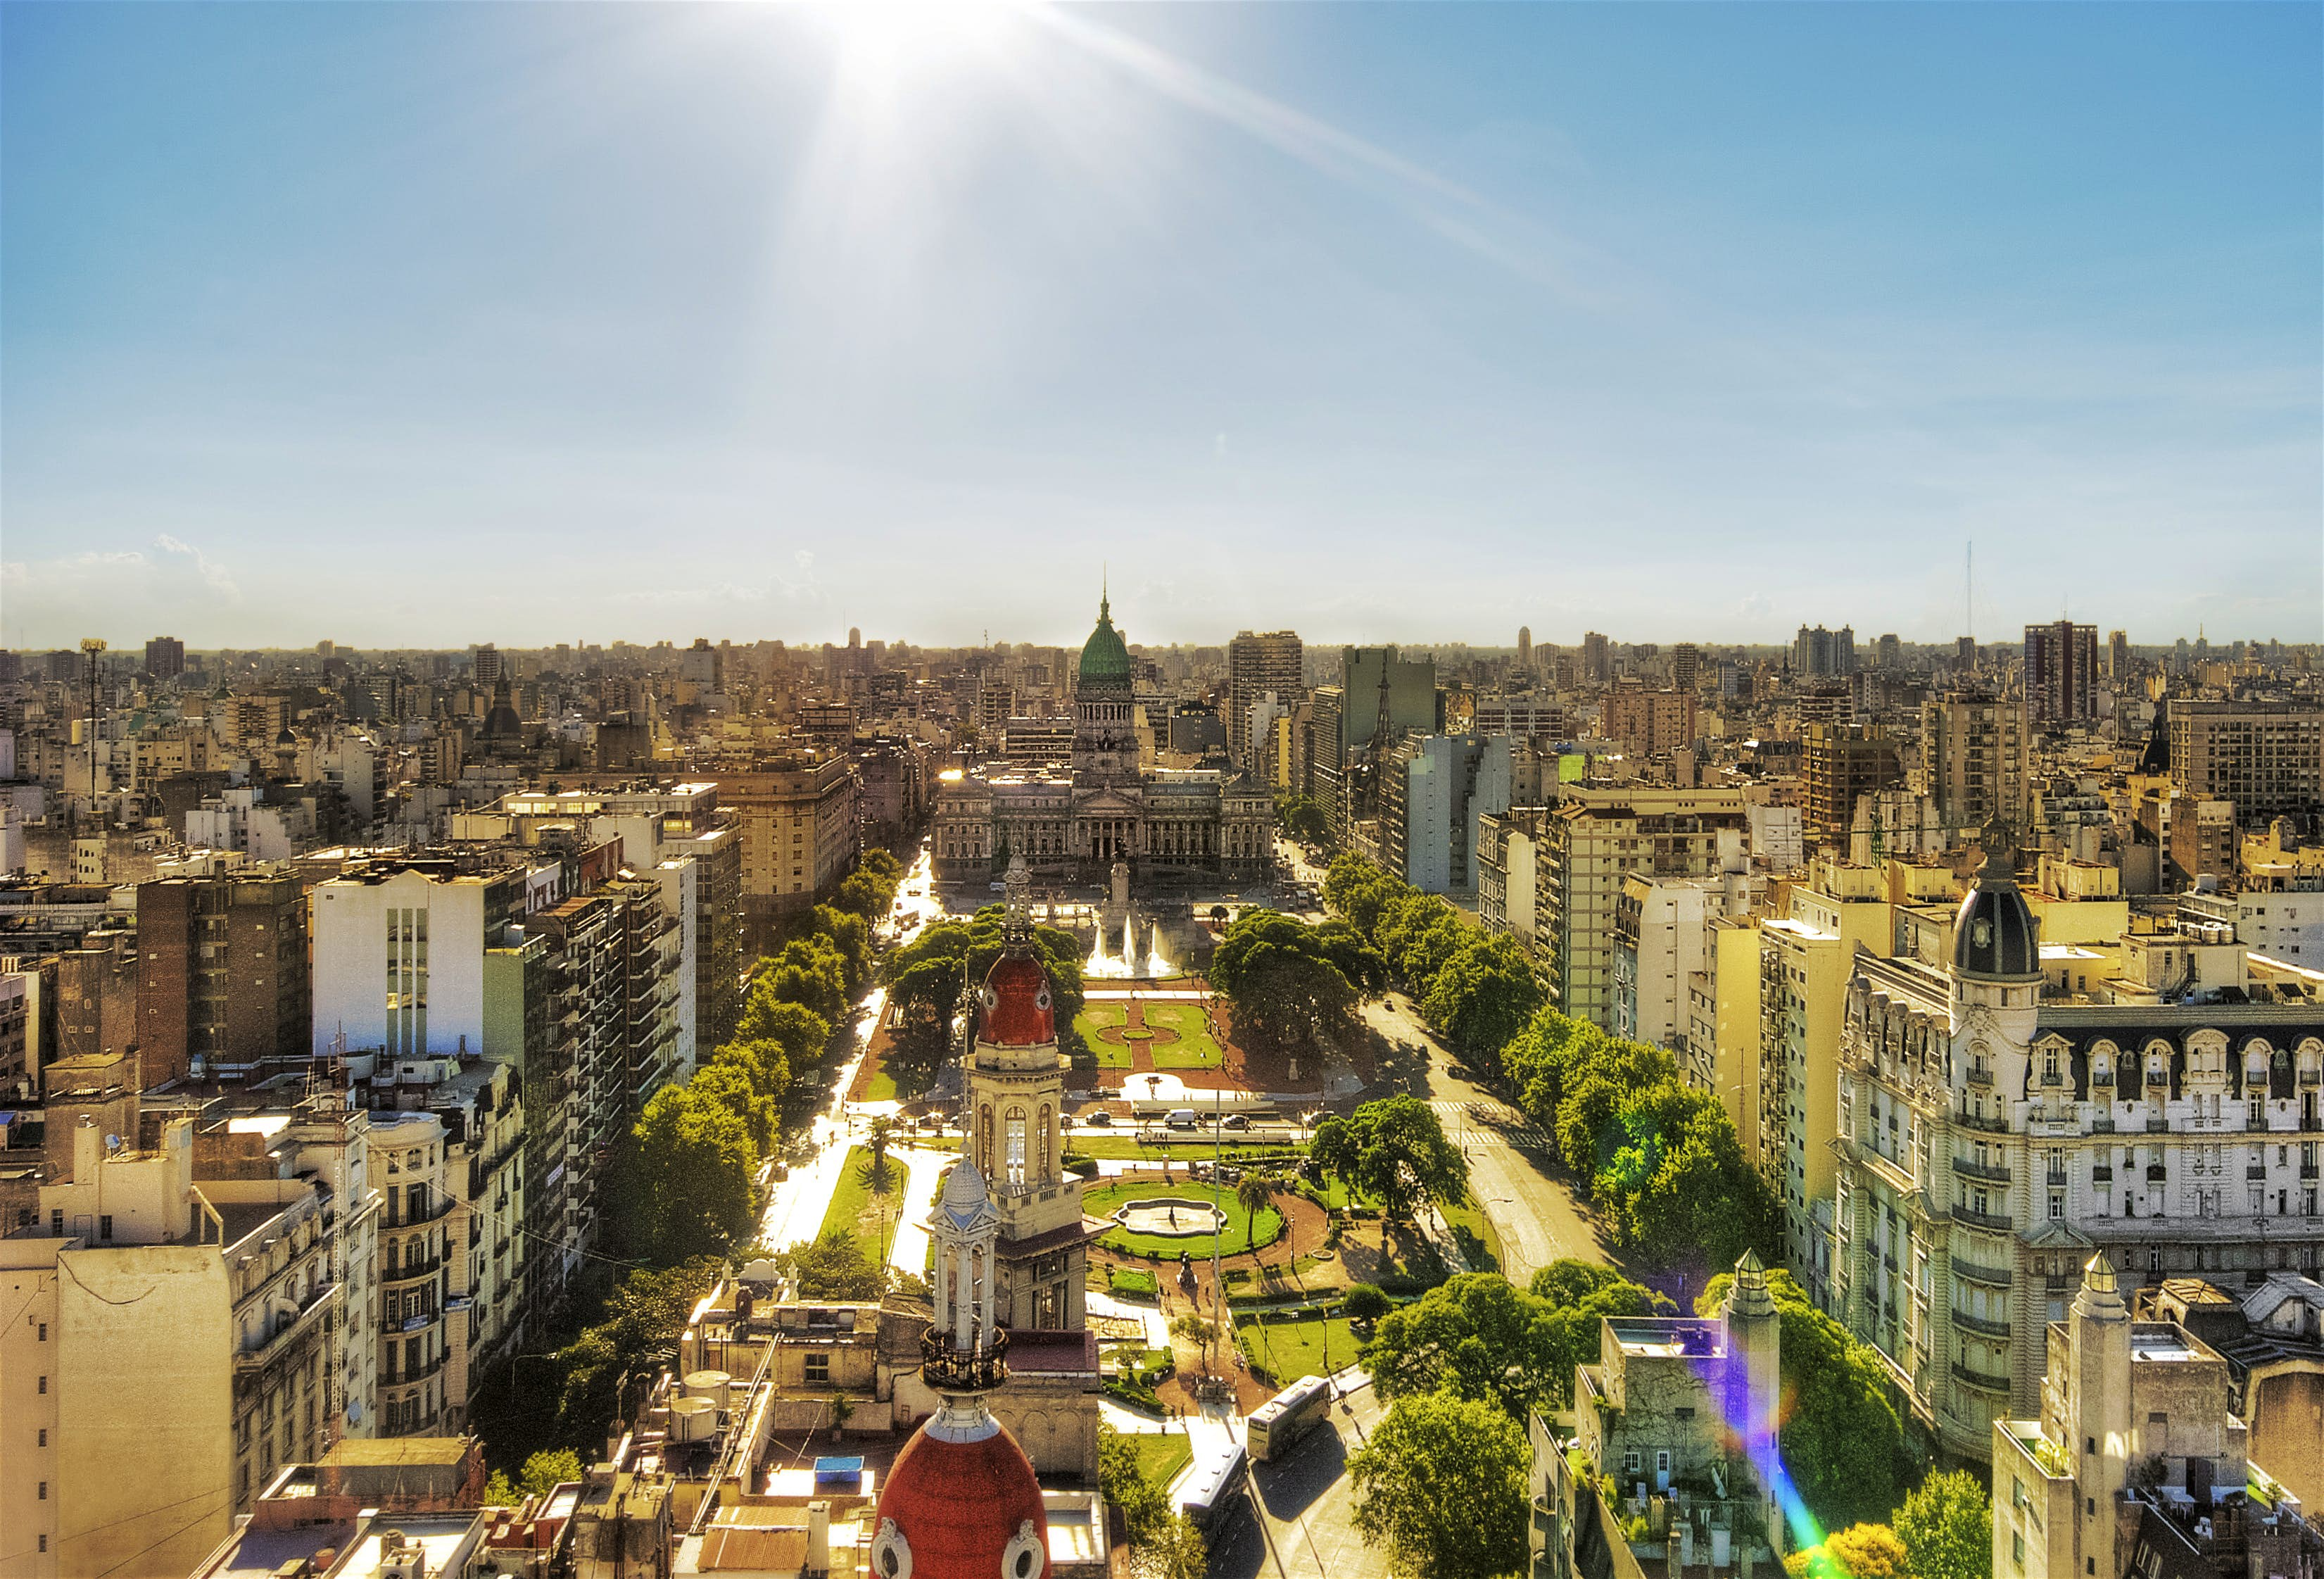 Living In Buenos Aires Argentina City Review By Andrej Dragisic City Reviews Expat And Digital Nomad Life Medium